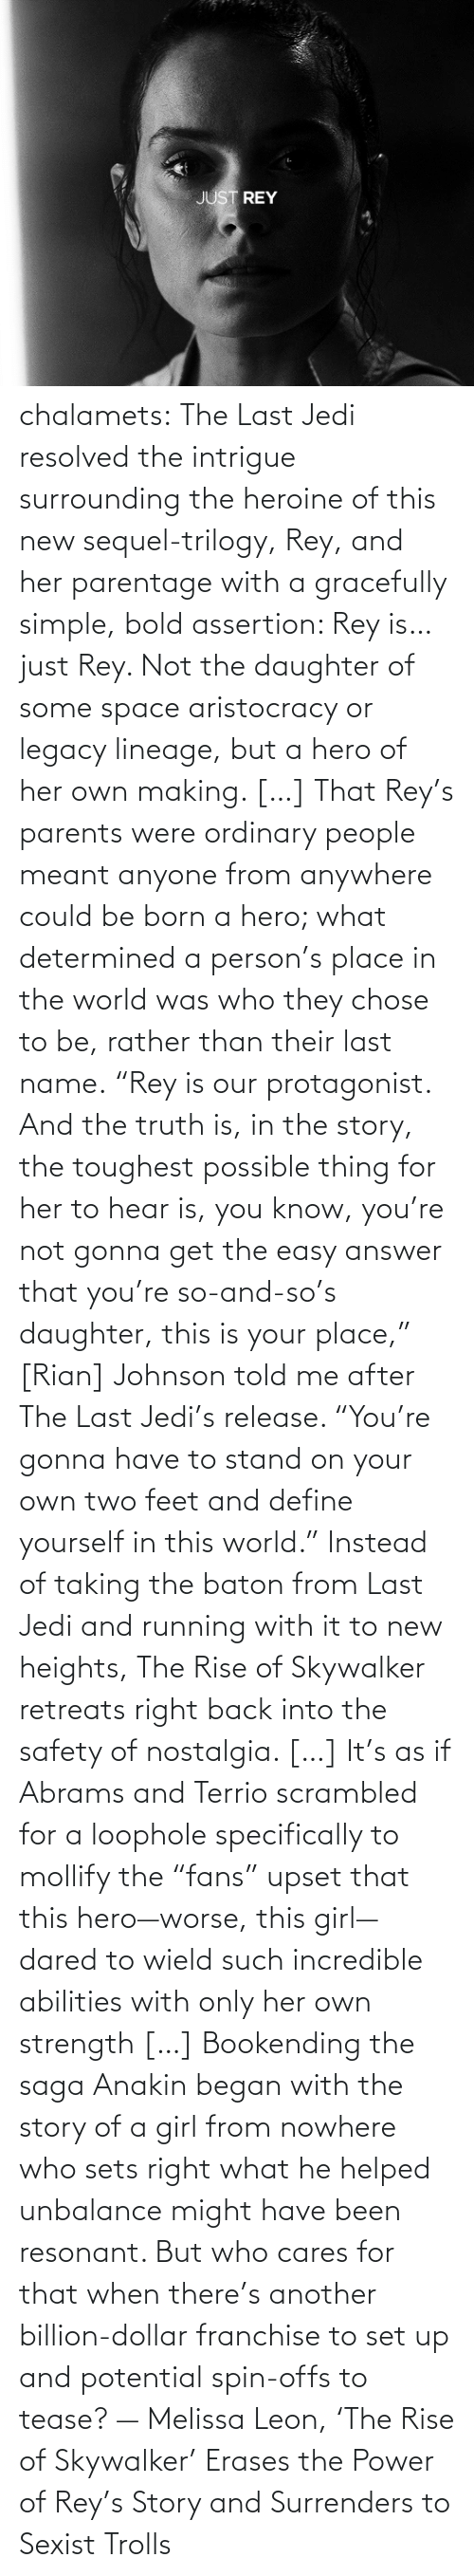 "this is: chalamets:  The Last Jedi resolved the intrigue surrounding the heroine of this new sequel-trilogy, Rey, and her parentage with a gracefully simple, bold assertion: Rey is… just Rey. Not the daughter of some space aristocracy or legacy lineage, but a hero of her own making. […] That Rey's parents were ordinary people meant anyone from anywhere could be born a hero; what determined a person's place in the world was who they chose to be, rather than their last name. ""Rey is our protagonist. And the truth is, in the story, the toughest possible thing for her to hear is, you know, you're not gonna get the easy answer that you're so-and-so's daughter, this is your place,"" [Rian] Johnson told me after The Last Jedi's release. ""You're gonna have to stand on your own two feet and define yourself in this world."" Instead of taking the baton from Last Jedi and running with it to new heights, The Rise of Skywalker retreats right back into the safety of nostalgia. […] It's as if Abrams and Terrio scrambled for a loophole specifically to mollify the ""fans"" upset that this hero—worse, this girl—dared to wield such incredible abilities with only her own strength […] Bookending the saga Anakin began with the story of a girl from nowhere who sets right what he helped unbalance might have been resonant. But who cares for that when there's another billion-dollar franchise to set up and potential spin-offs to tease? — Melissa Leon, 'The Rise of Skywalker' Erases the Power of Rey's Story and Surrenders to Sexist Trolls"